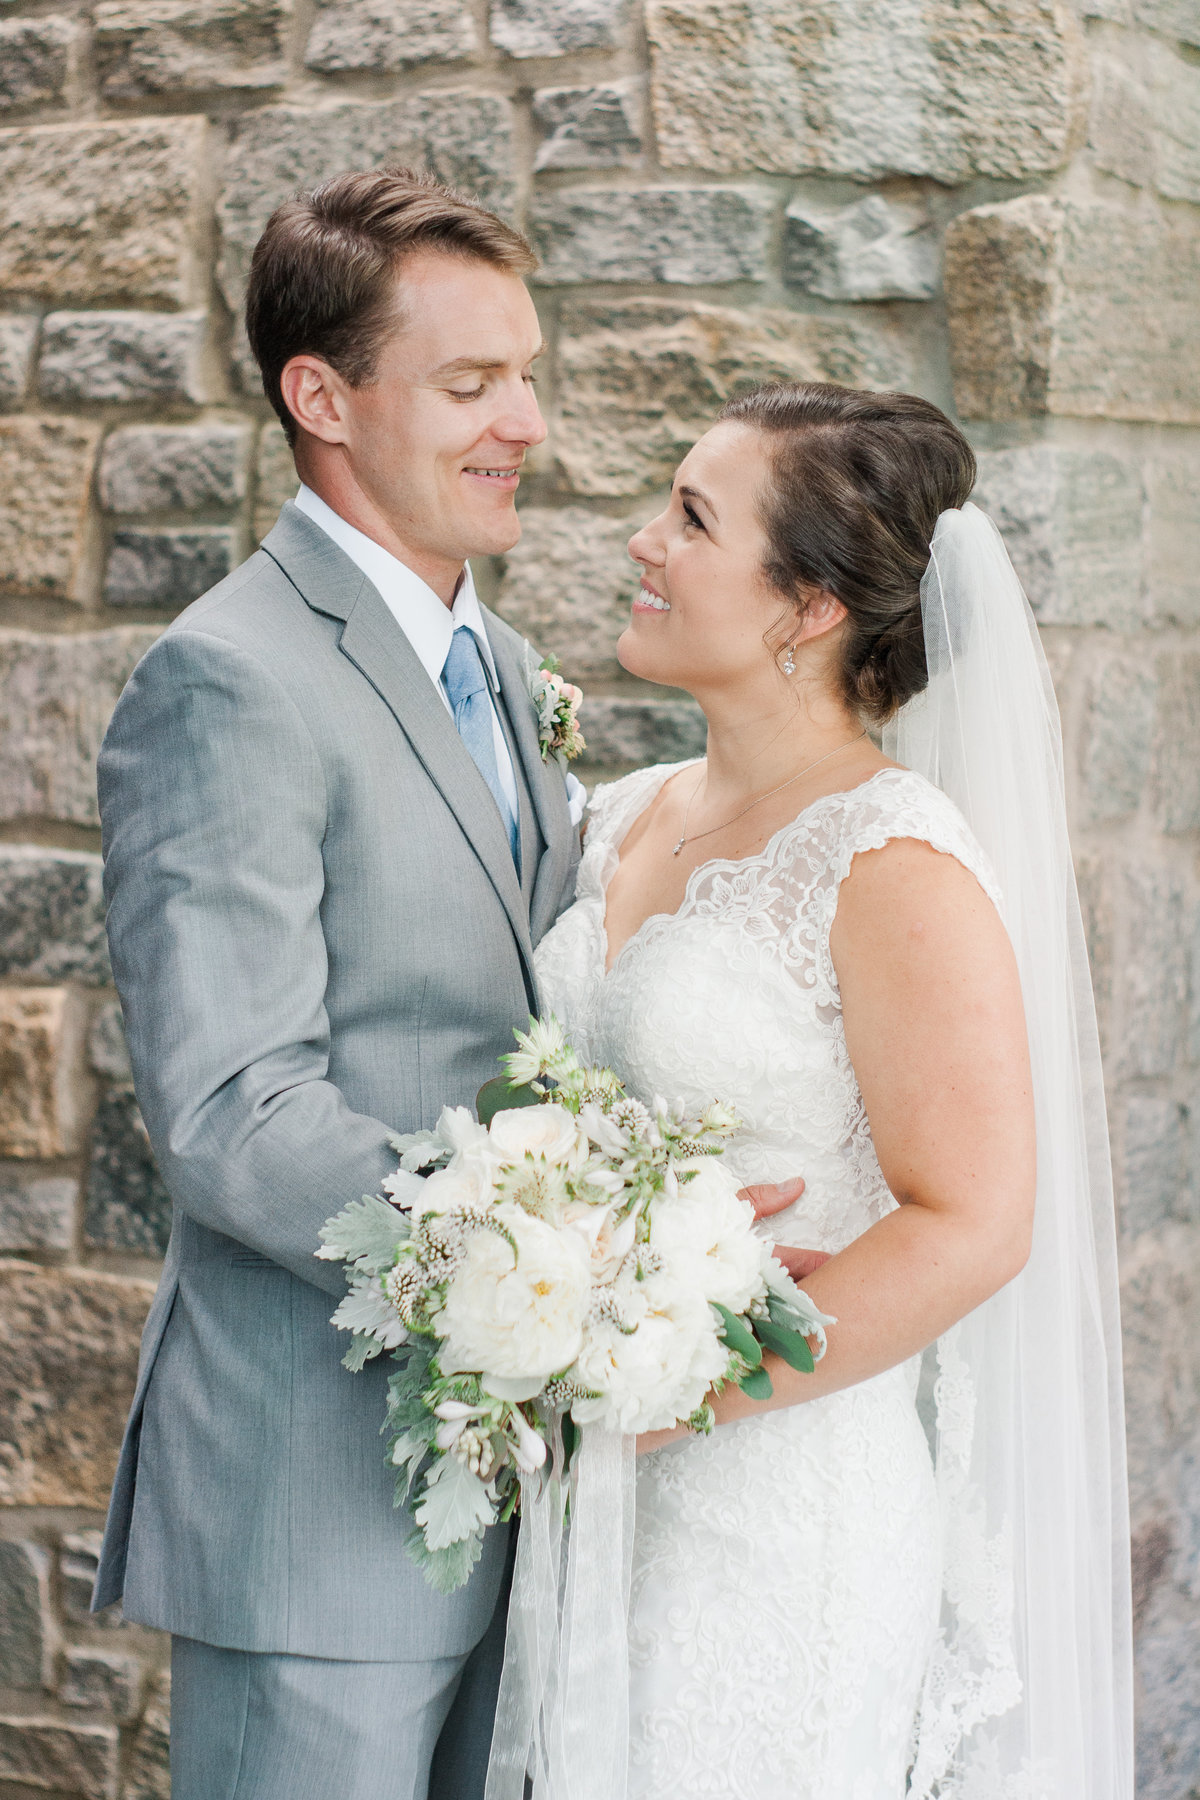 Destination wedding ceremony photographed at Blowing Rock Country Club by Boone Photographer Wayfaring Wanderer. BRCC is a gorgeous venue in Blowing Rock, NC.